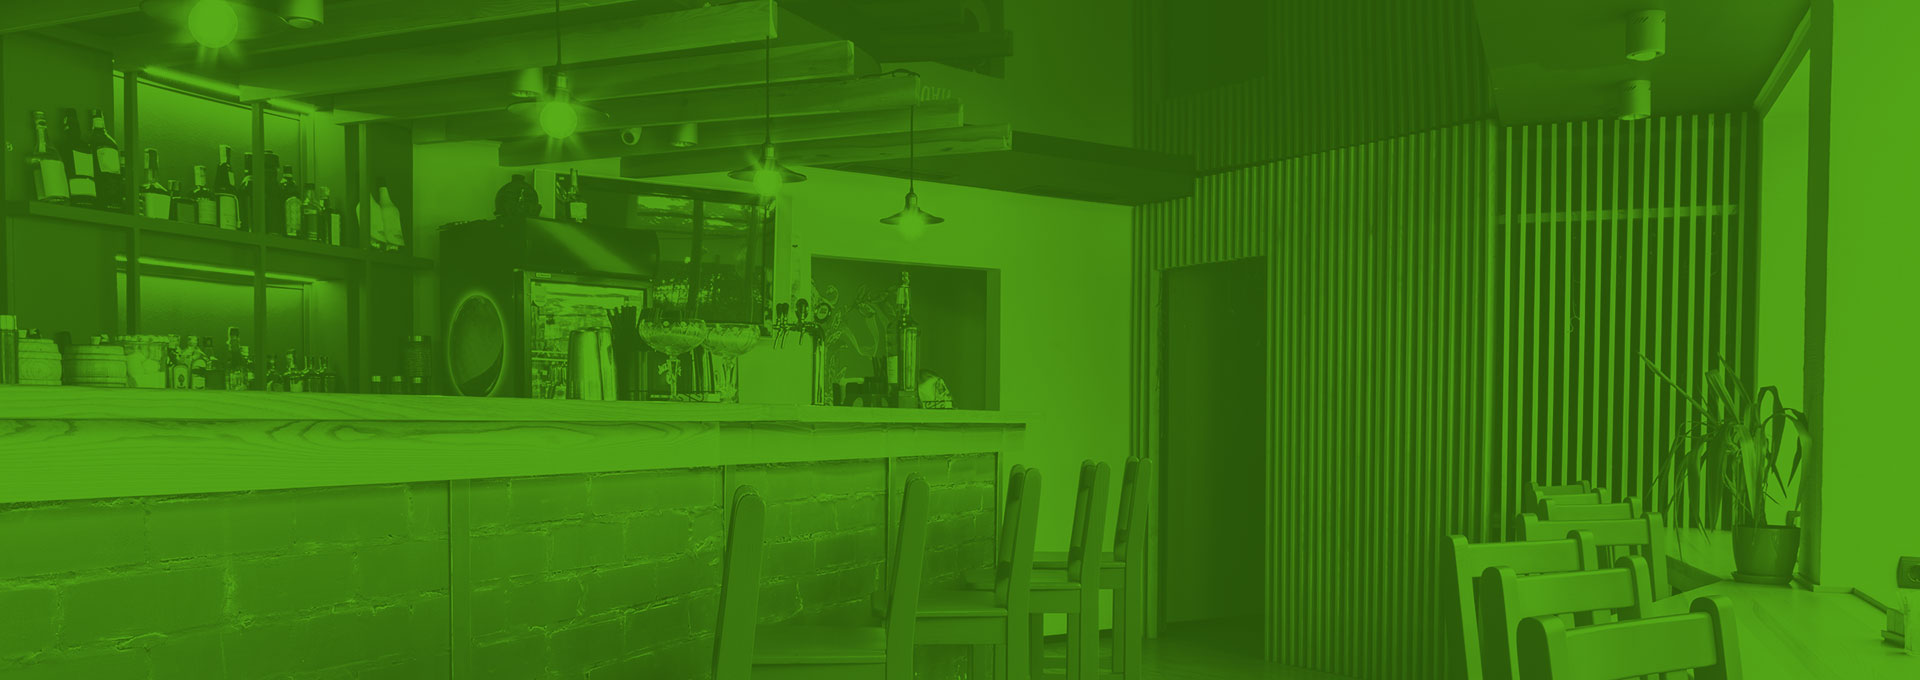 Sustainability Guide For Restaurants: 5 Tips on Saving Energy in Your Restaurant